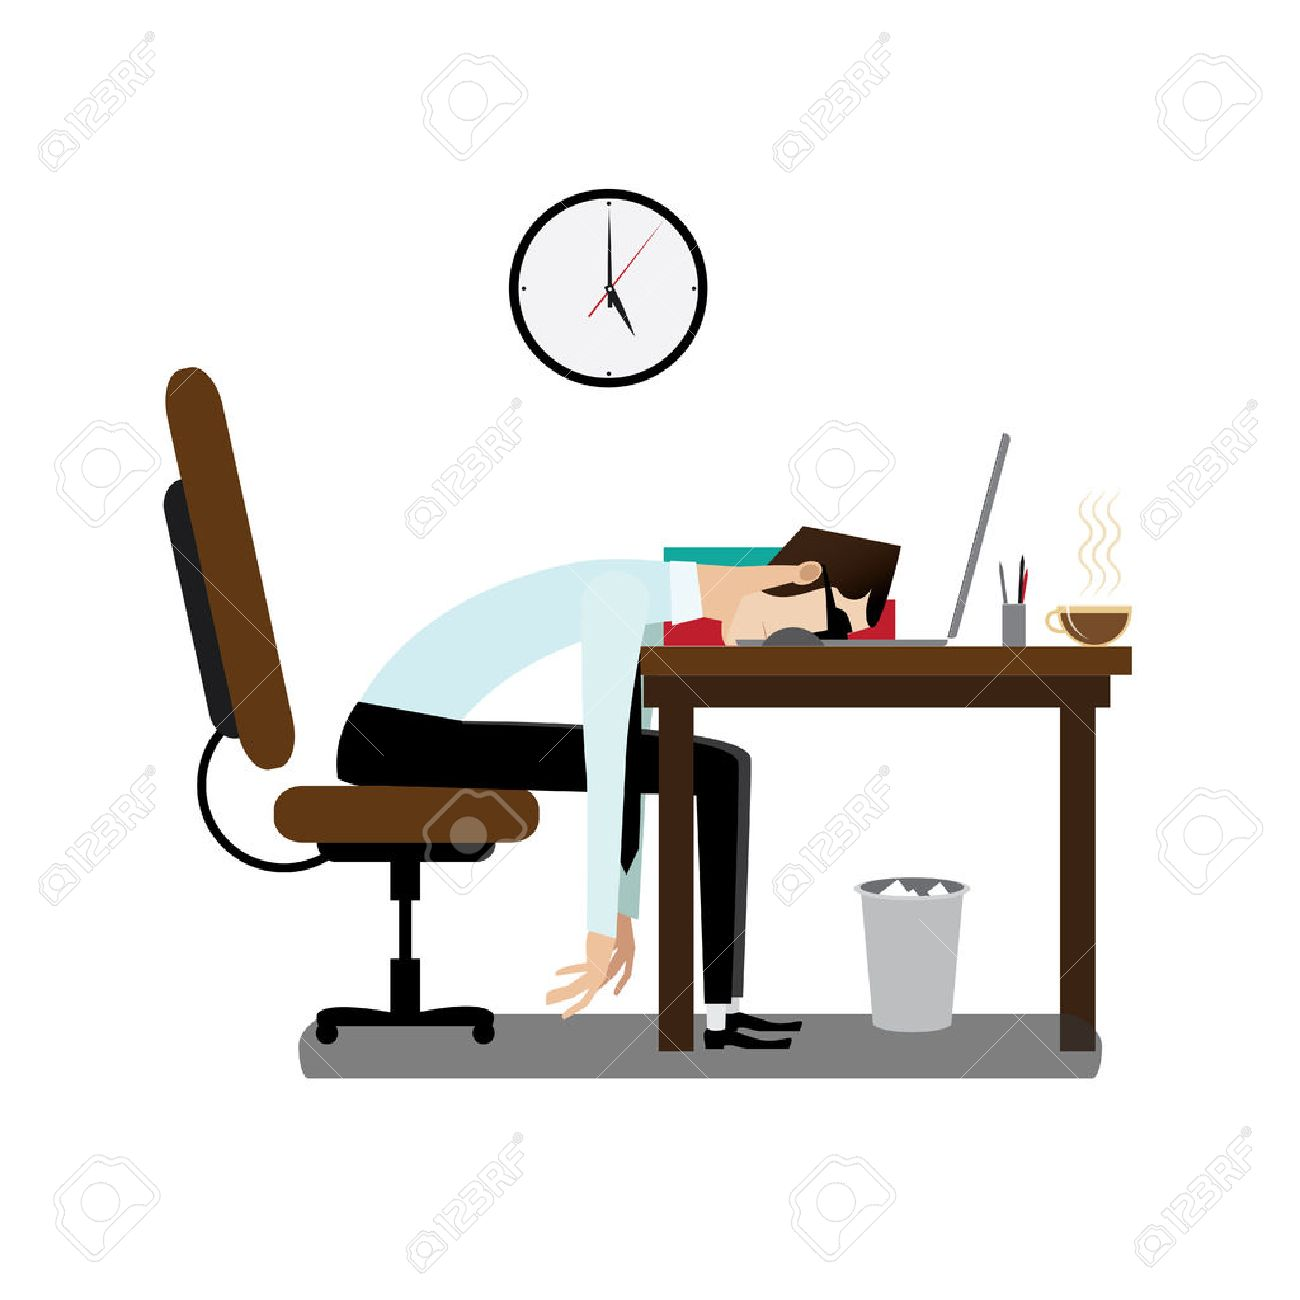 Vector illustration on white background featuring evening, tired office man sleeping at working desk - 46197404